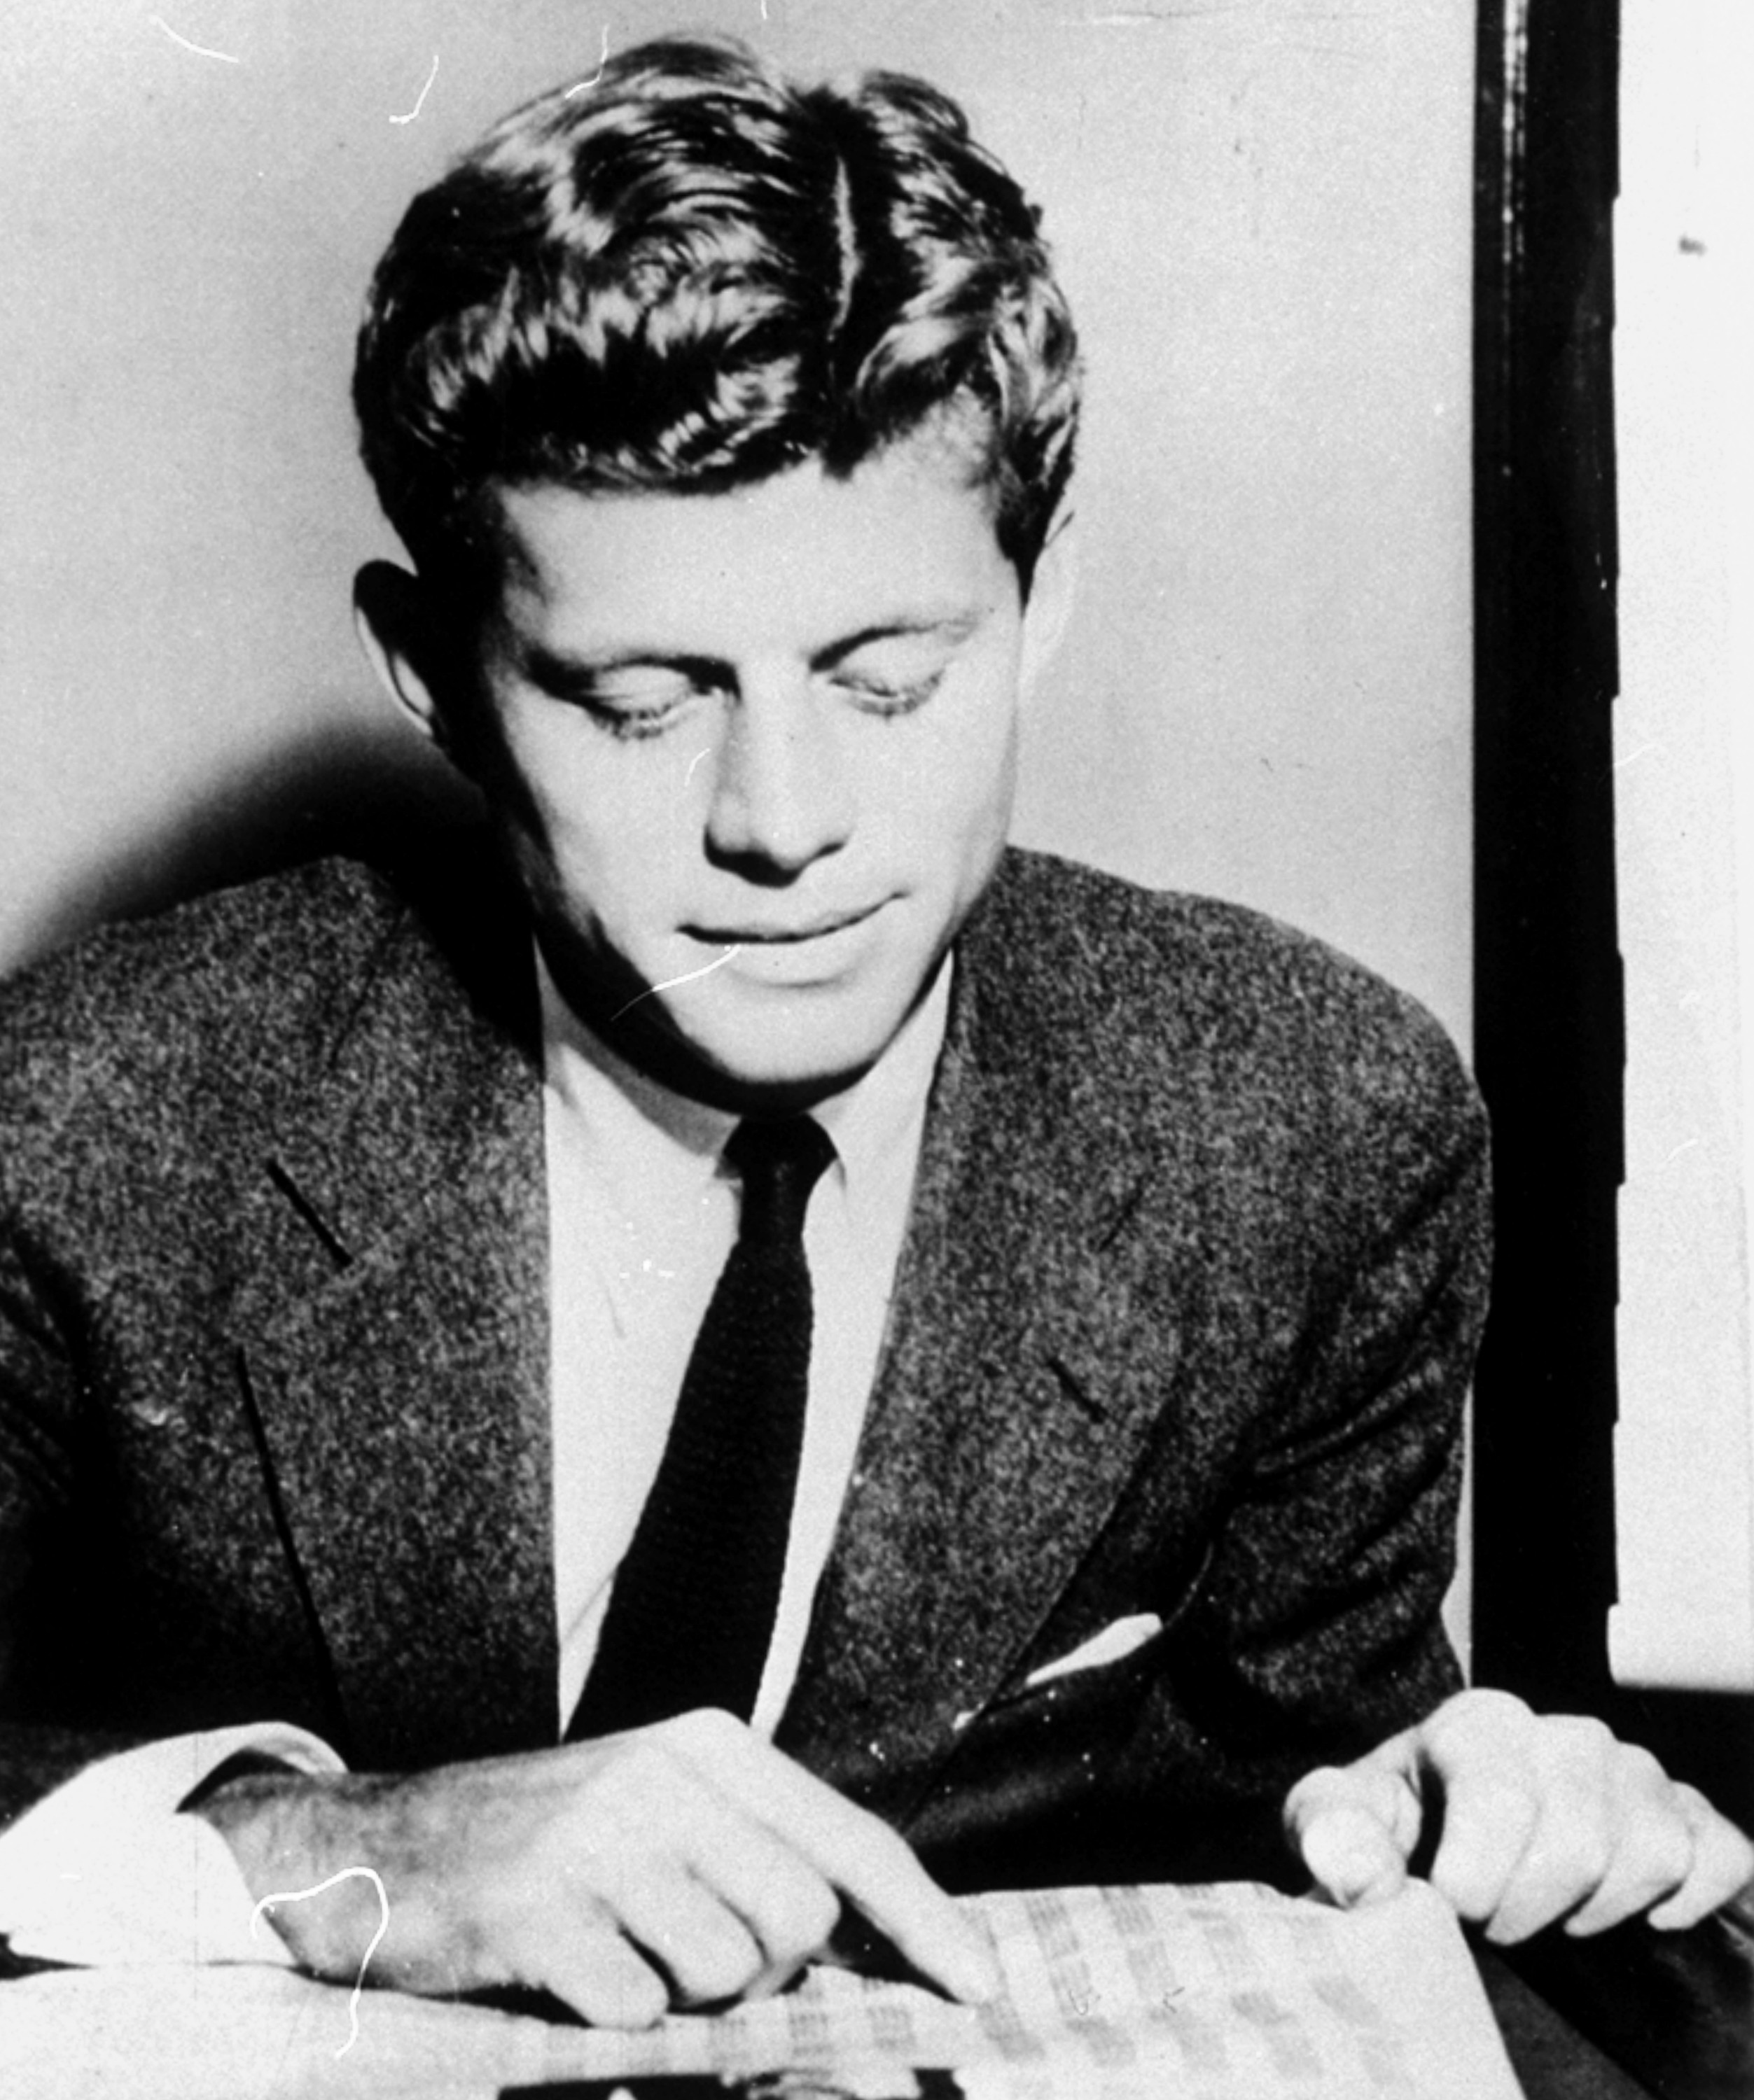 <div class='meta'><div class='origin-logo' data-origin='none'></div><span class='caption-text' data-credit='ASSOCIATED PRESS'>John F. Kennedy is pictured as a 23-year-old graduate student at Stanford University, Palo Alto, California, in October 1940.  He had graduated Harvard in June.</span></div>